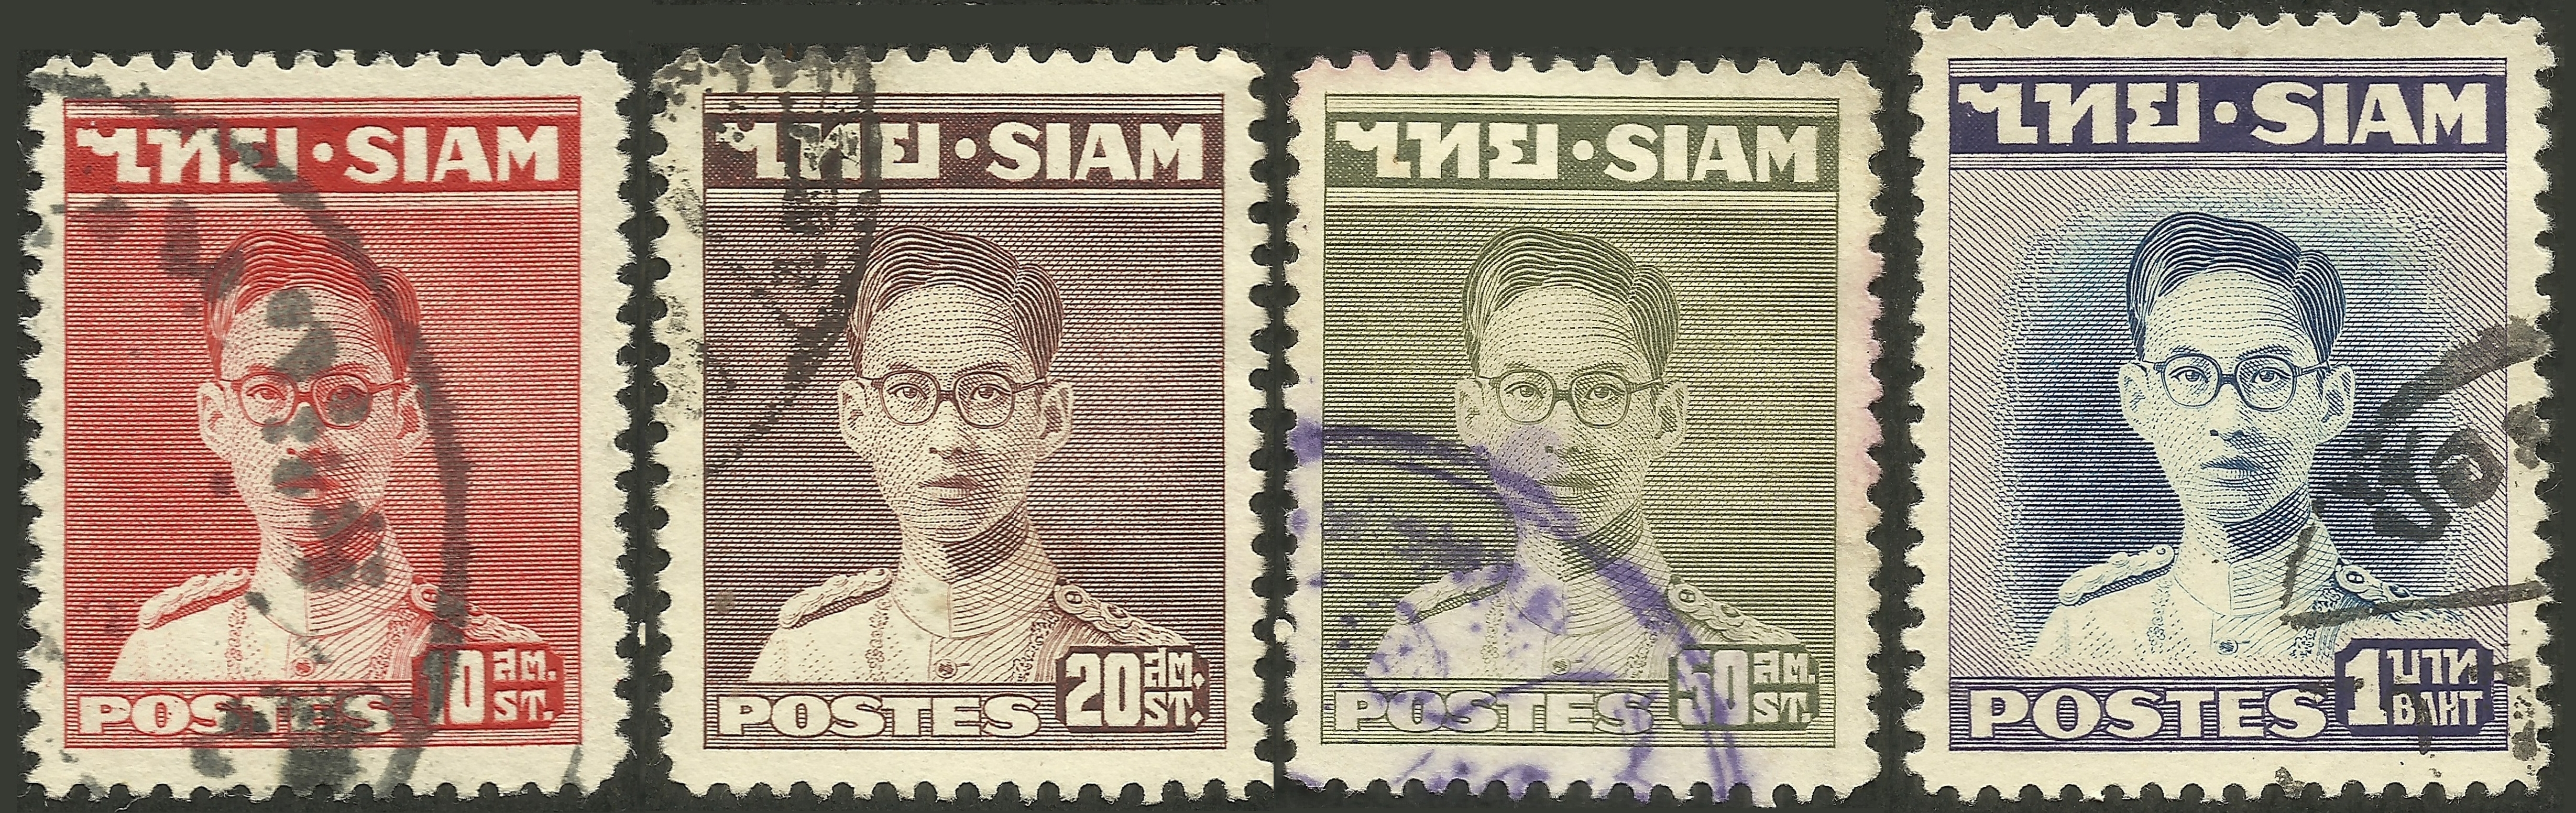 King Rama IX 1st Series (1947-1949) Scott #265, 266, 267, 268